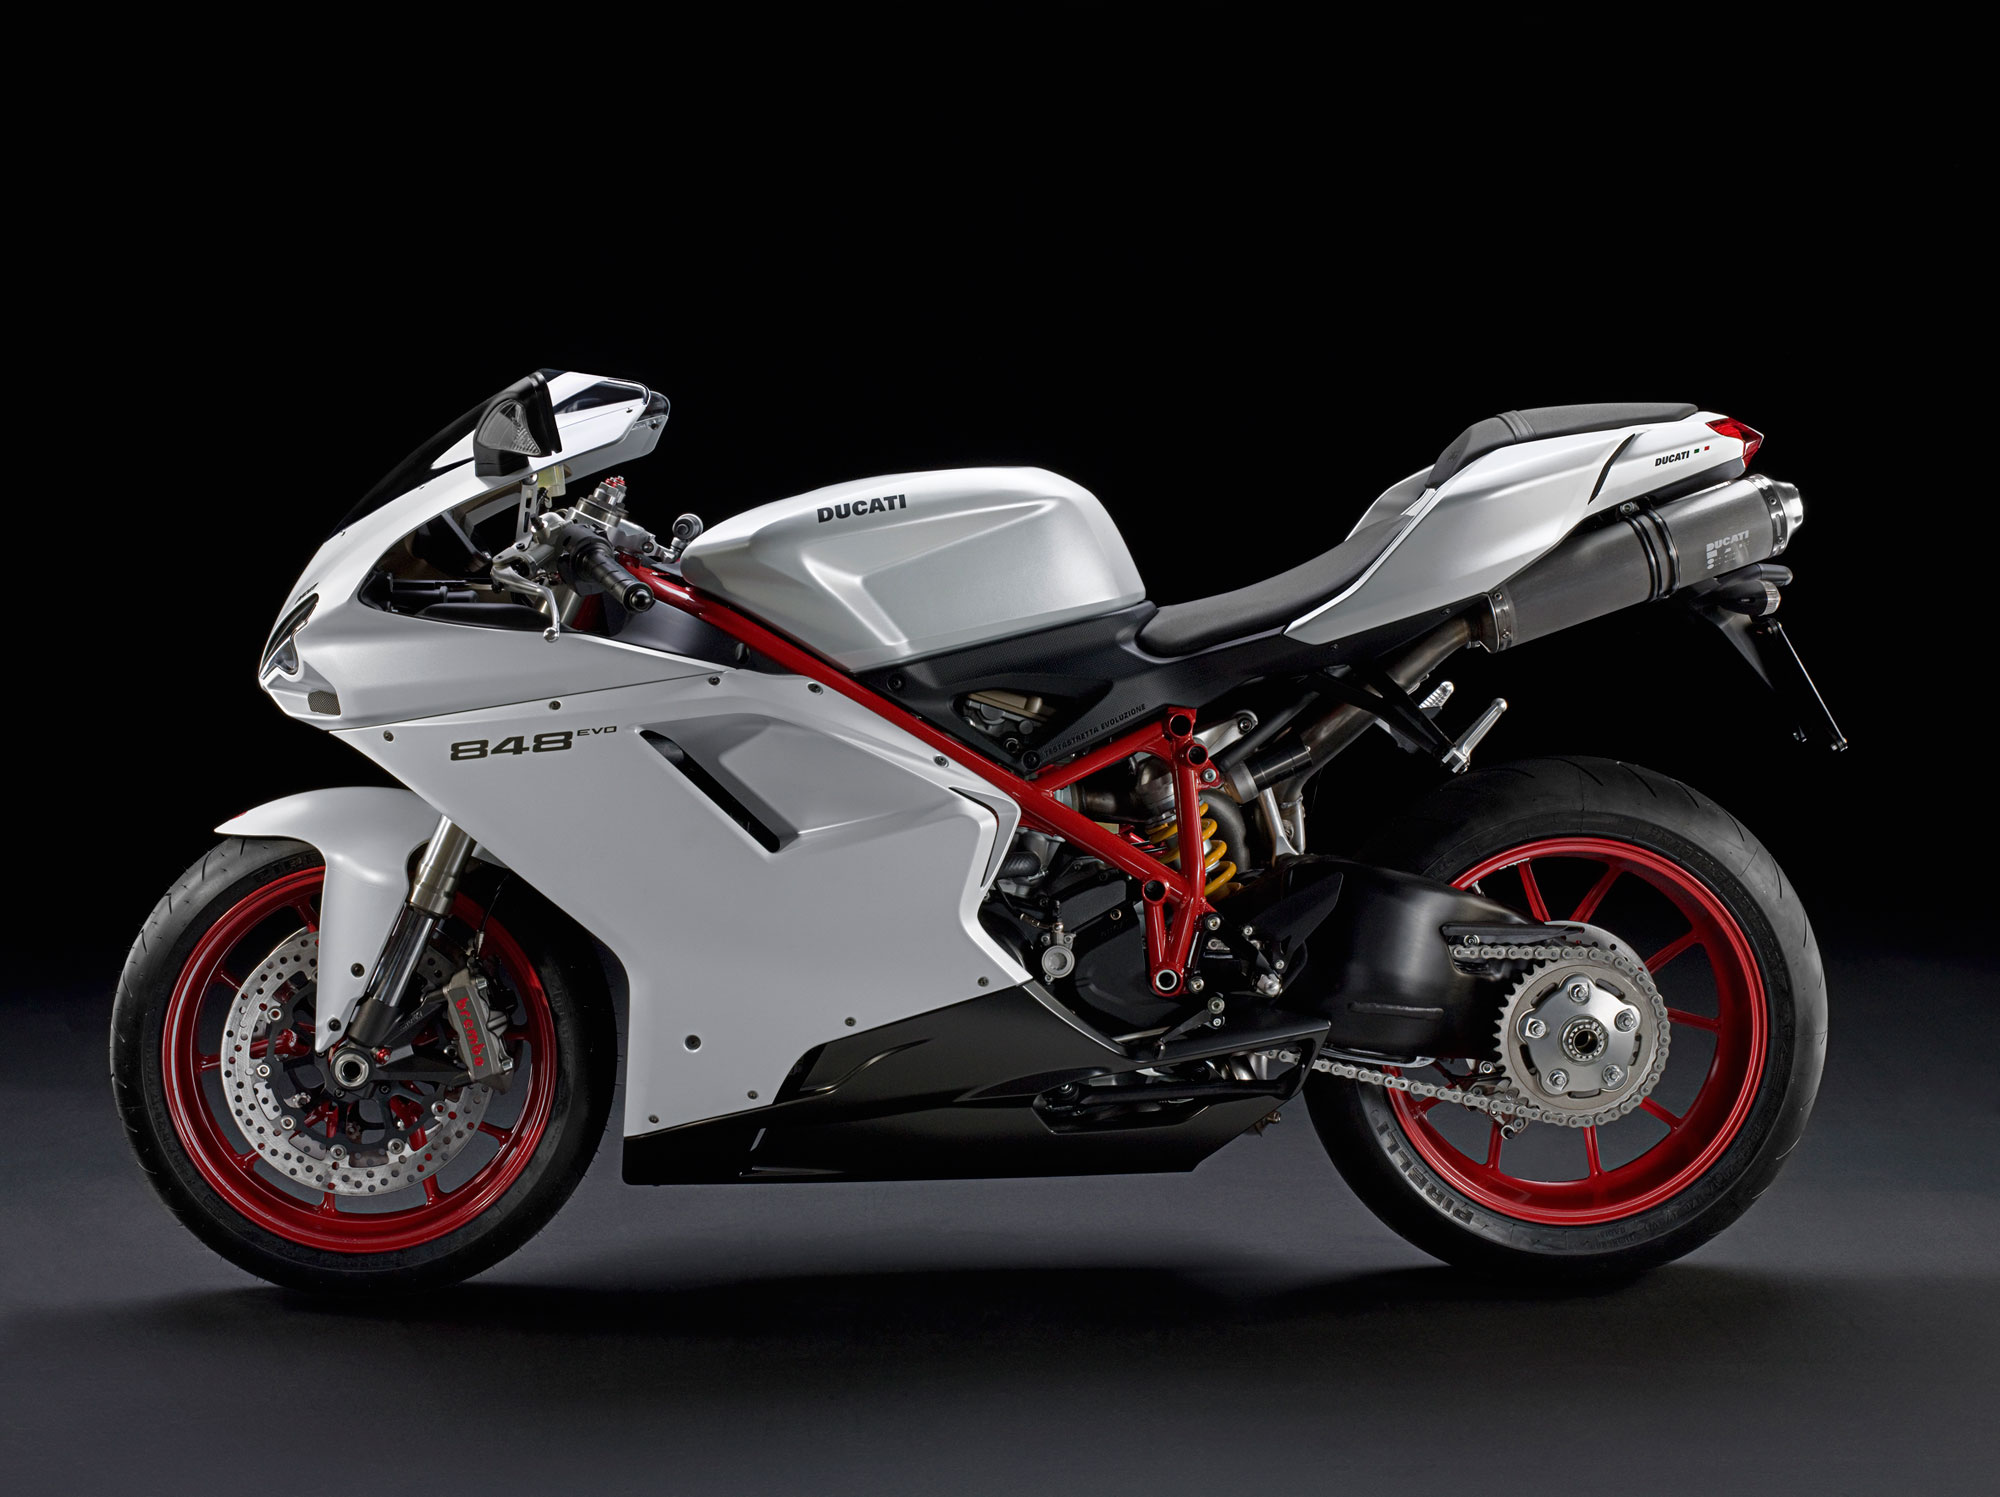 2013 Ducati Superbike 848 EVO q wallpaper | 2000x1497 ...